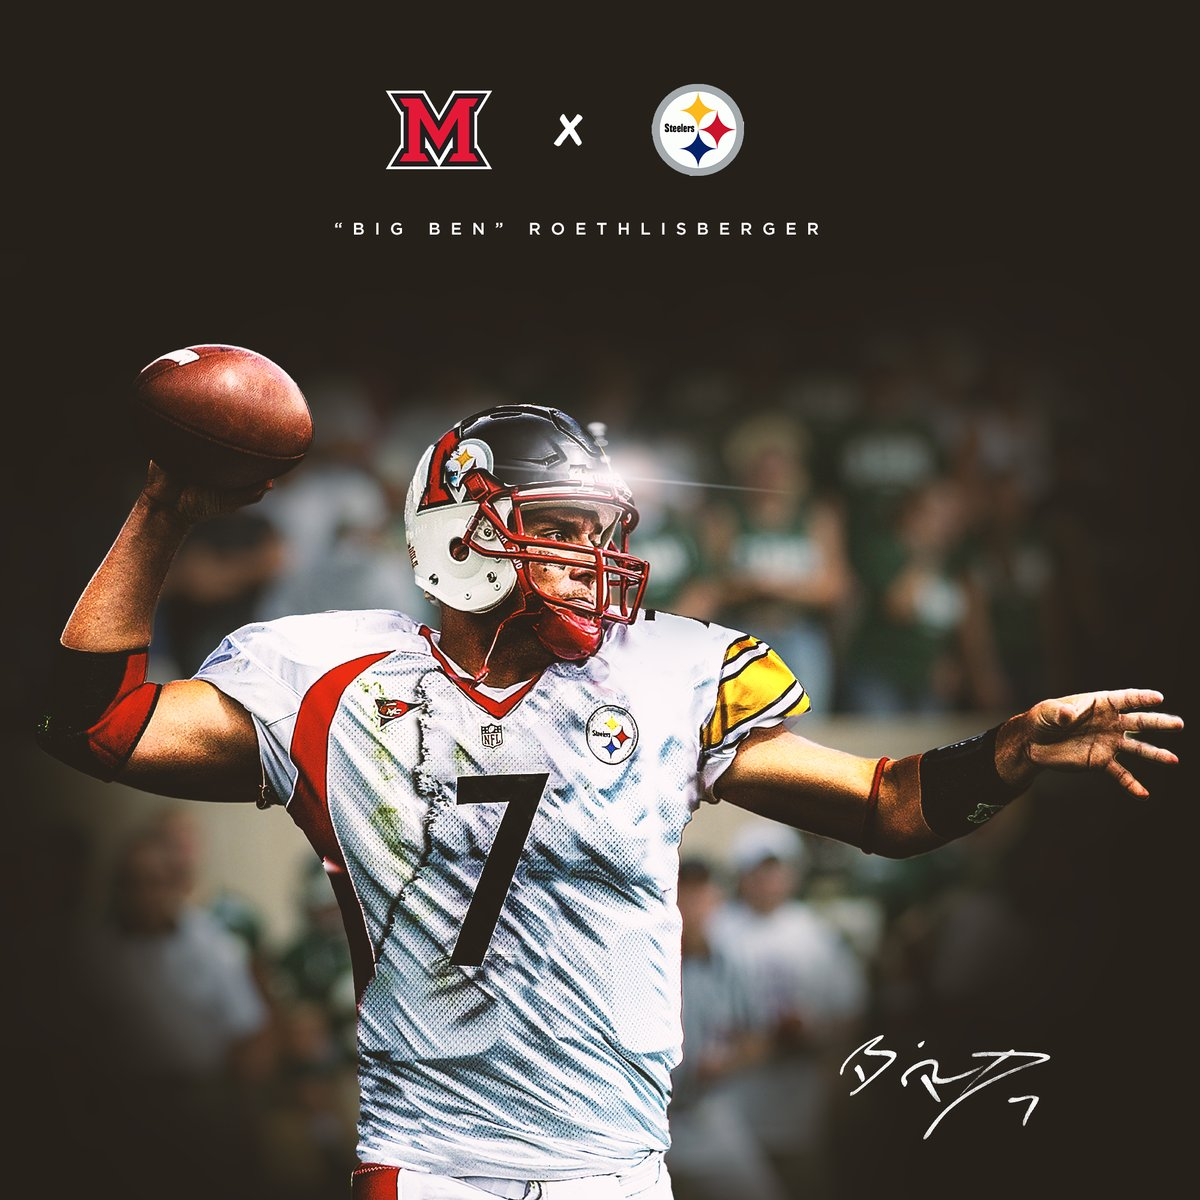 1️⃣7️⃣ Years in the #NFL   Still showing why he is one of the greatest to ever do it!  Congratulations to @_BigBen7, 10-0 in 2020!  🐐🐐🐐  #RiseUpRedHawks | 🎓🏆 https://t.co/aZlh8kIwc2